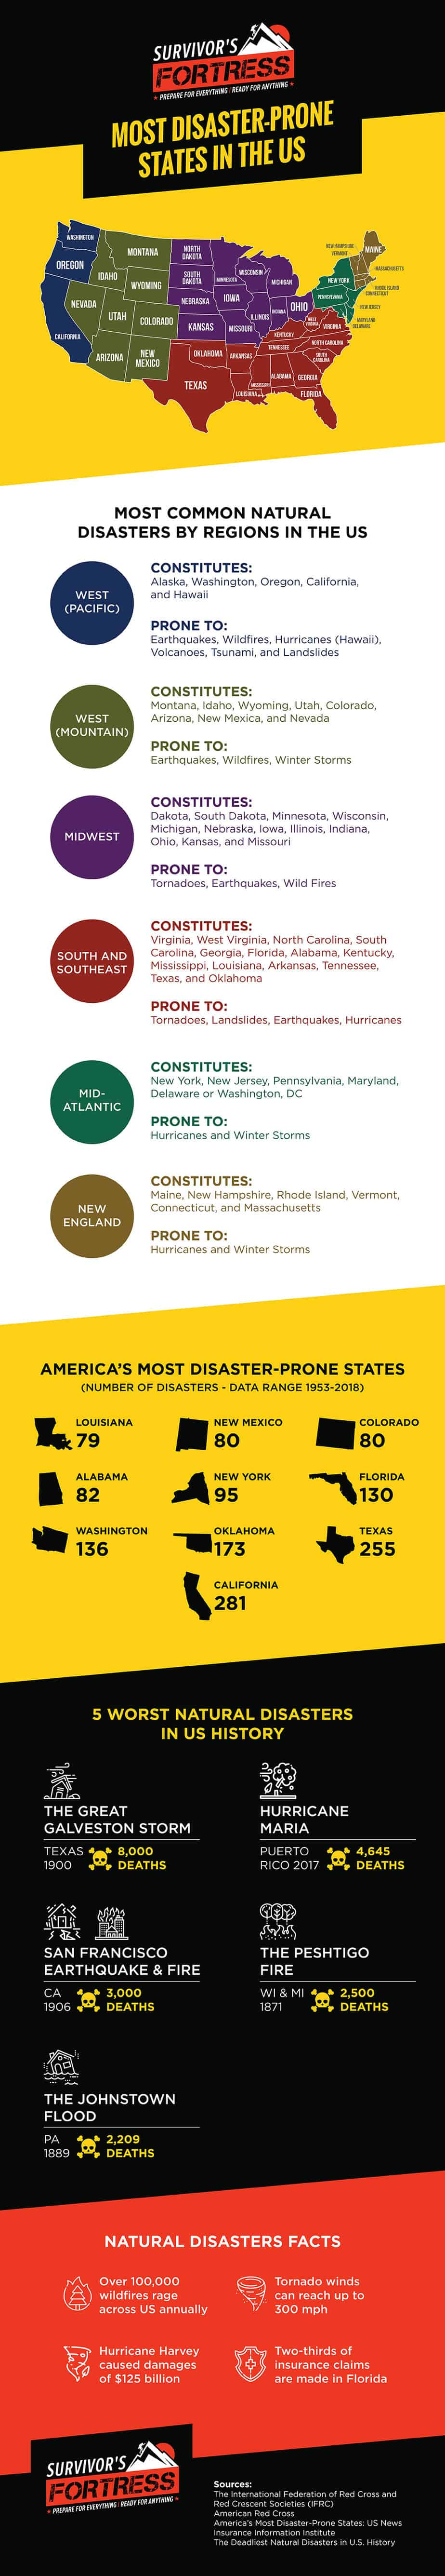 most-disaster-prone-states-in-the-usa-infographic